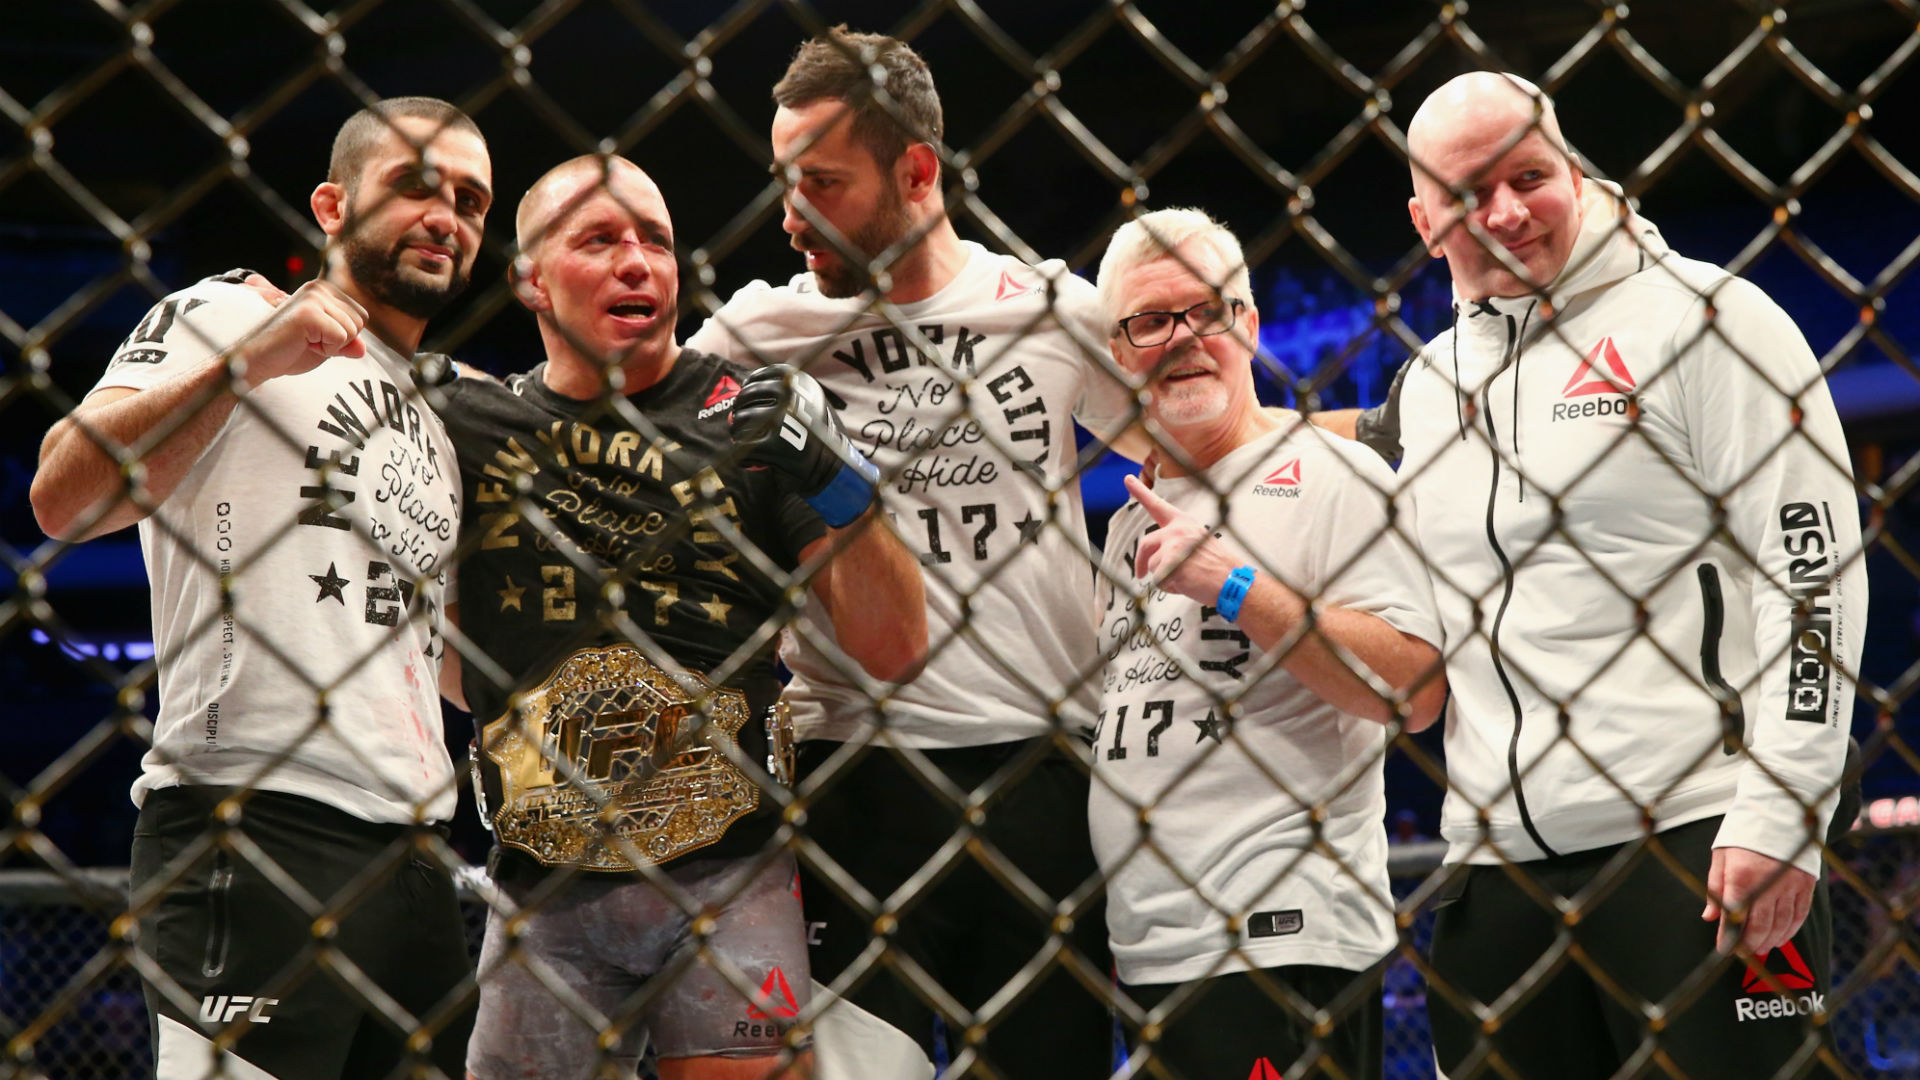 UFC 217: Georges St-Pierre defeats Michael Bisping to claim middleweight championship